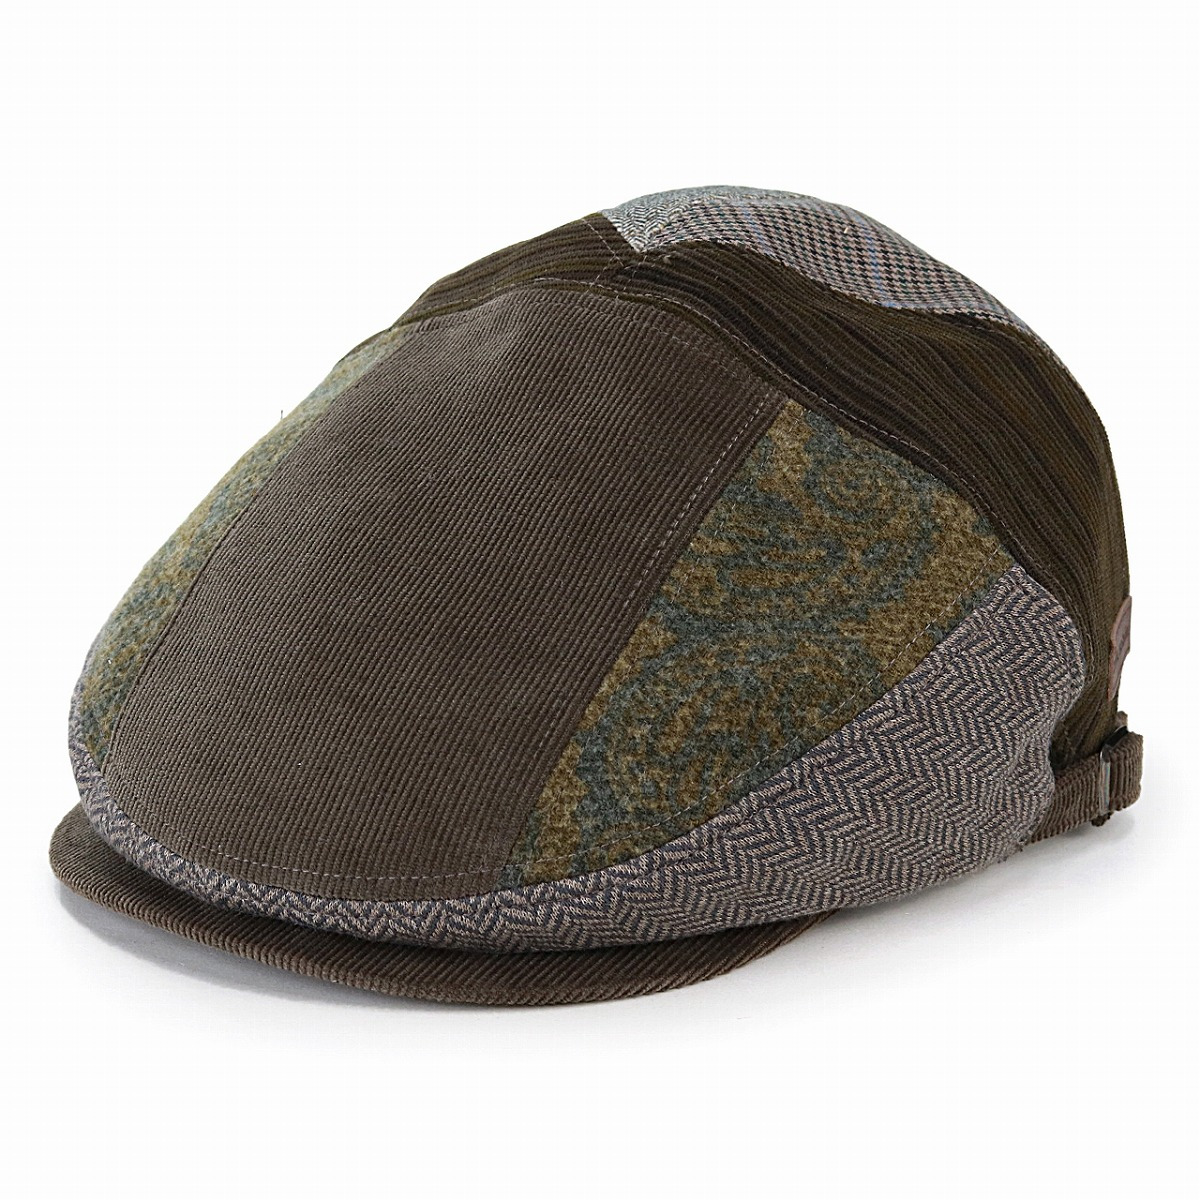 f640e2636d292 Ivy cap   tea brown  ivy cap  Christmas present hat man made in Mila Schon  hunting cap men patchwork milaschon hat Italy brand corduroy check hunting  cap ...